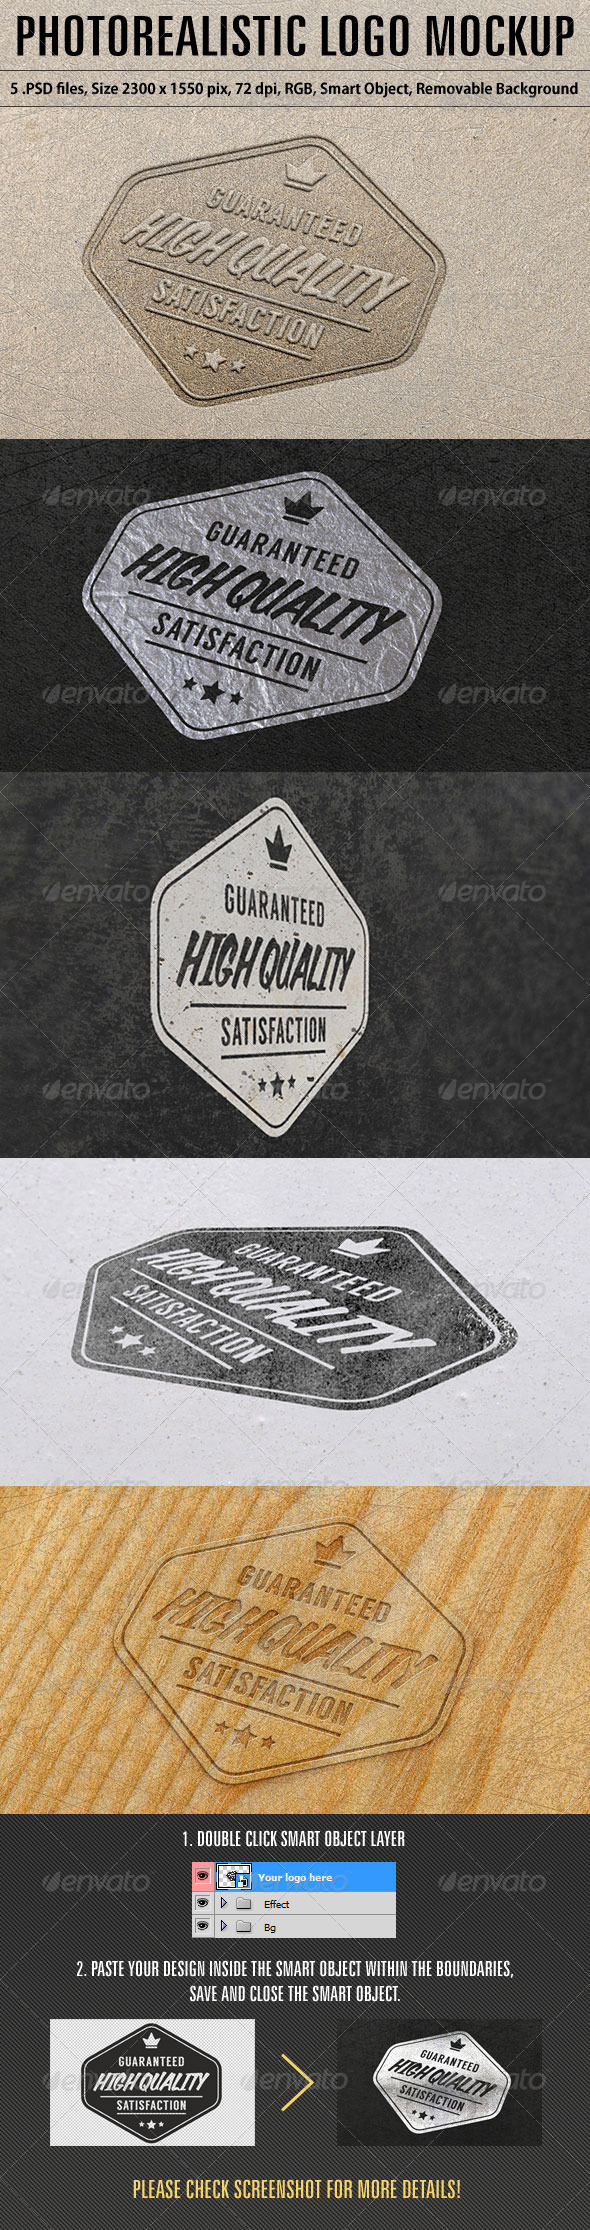 Photorealistic Logo Mockup - Product Mock-Ups Graphics